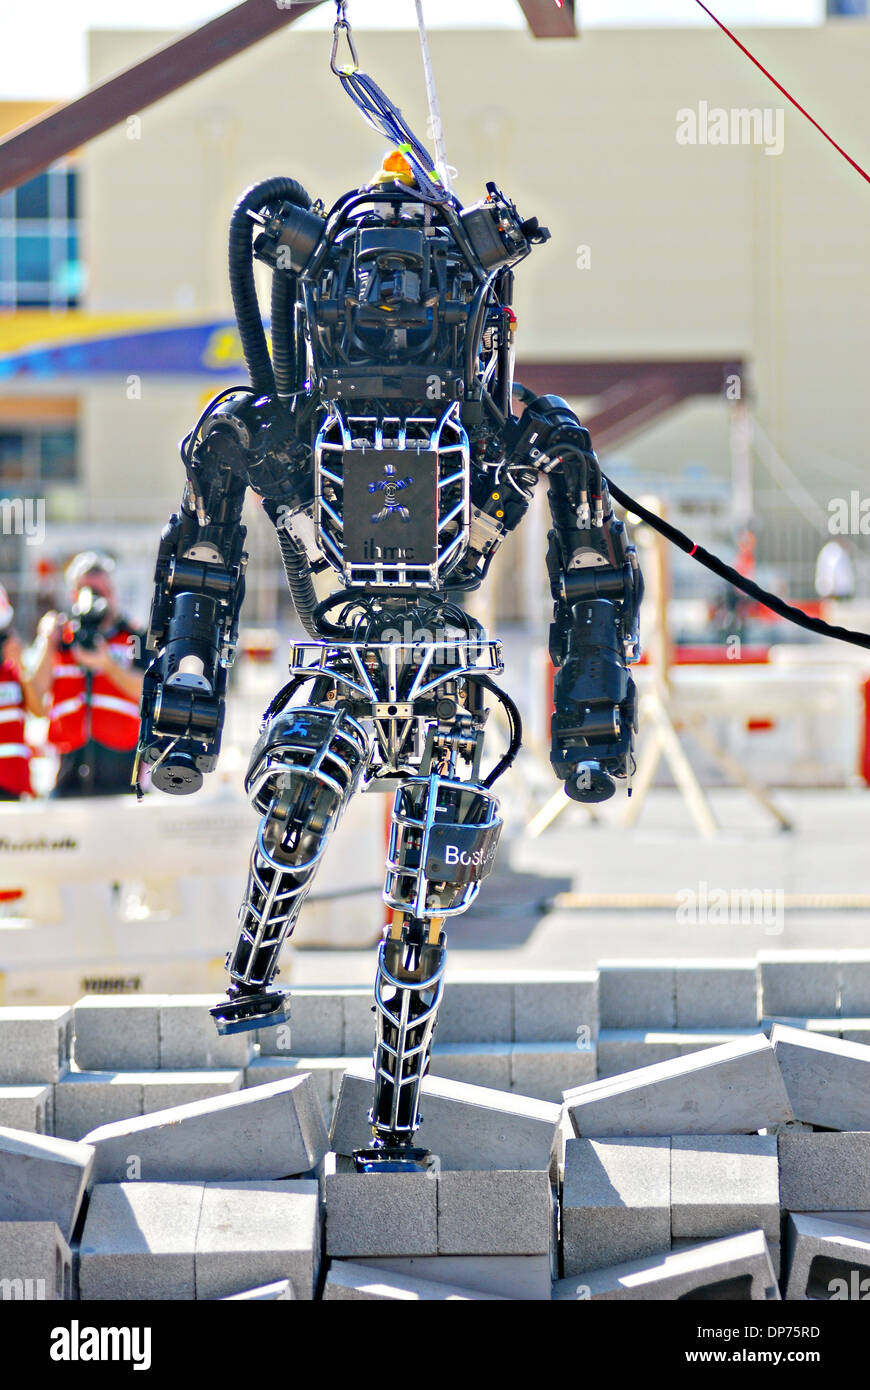 Ian, an Atlas robot with the IHMC Robotics team during the DARPA Rescue Robot Showdown at Homestead Miami Speedway - Stock Image